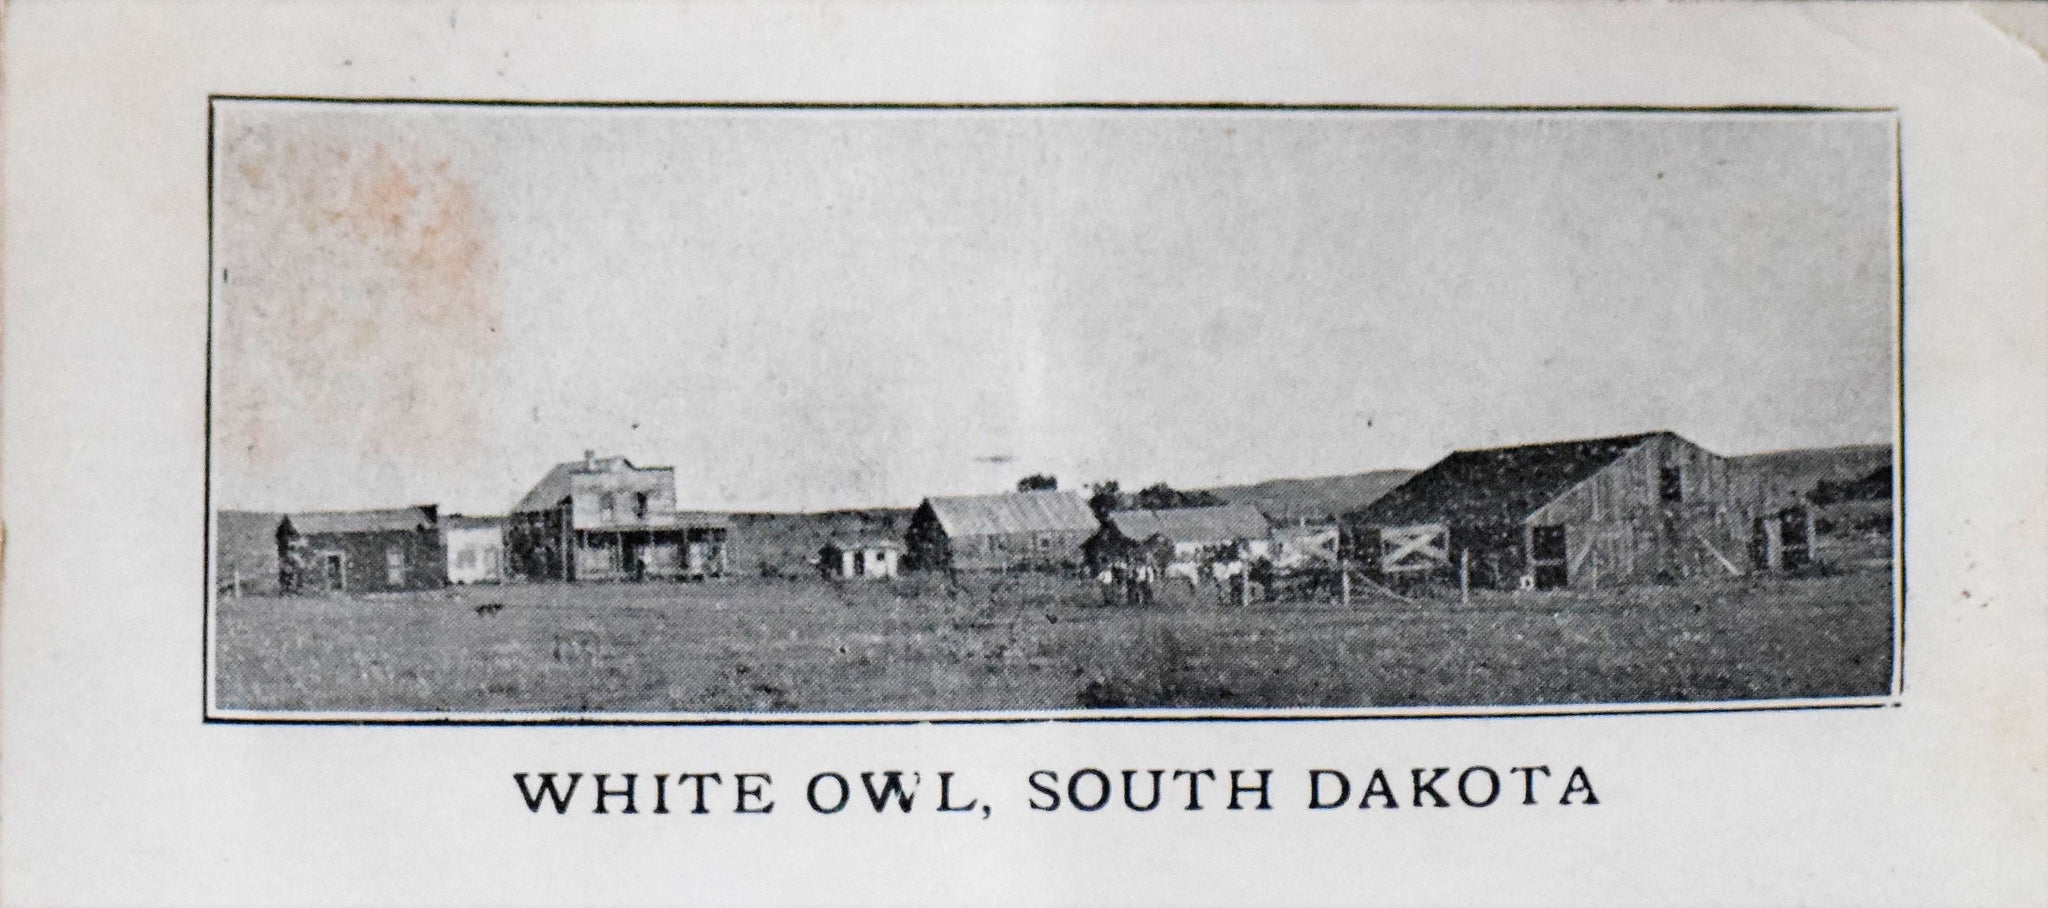 White Owl, SD Postcard circa 1910